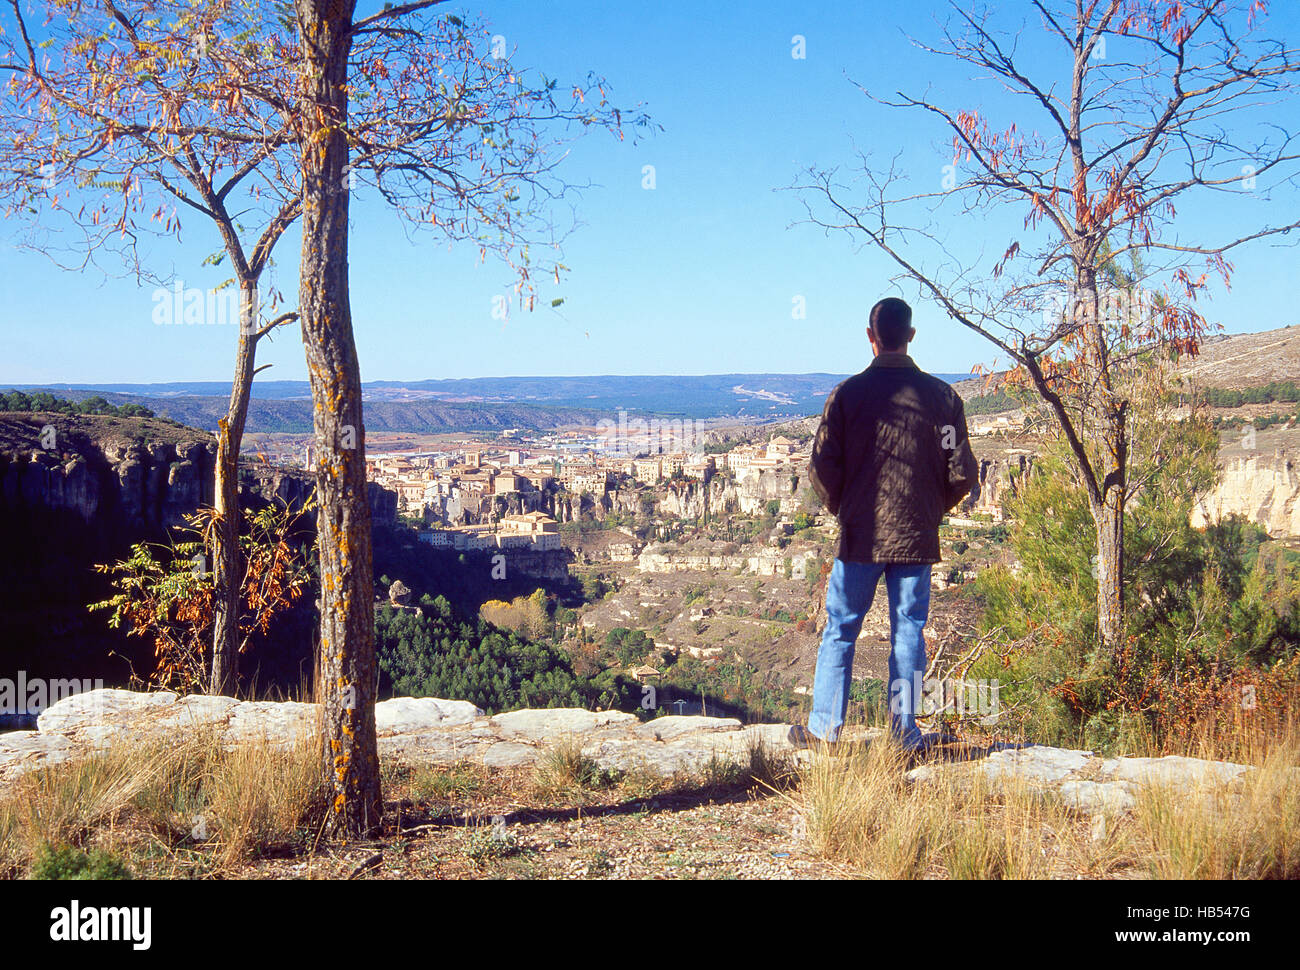 Man at the viewpoint, looking at the city. Cuenca, Spain. - Stock Image